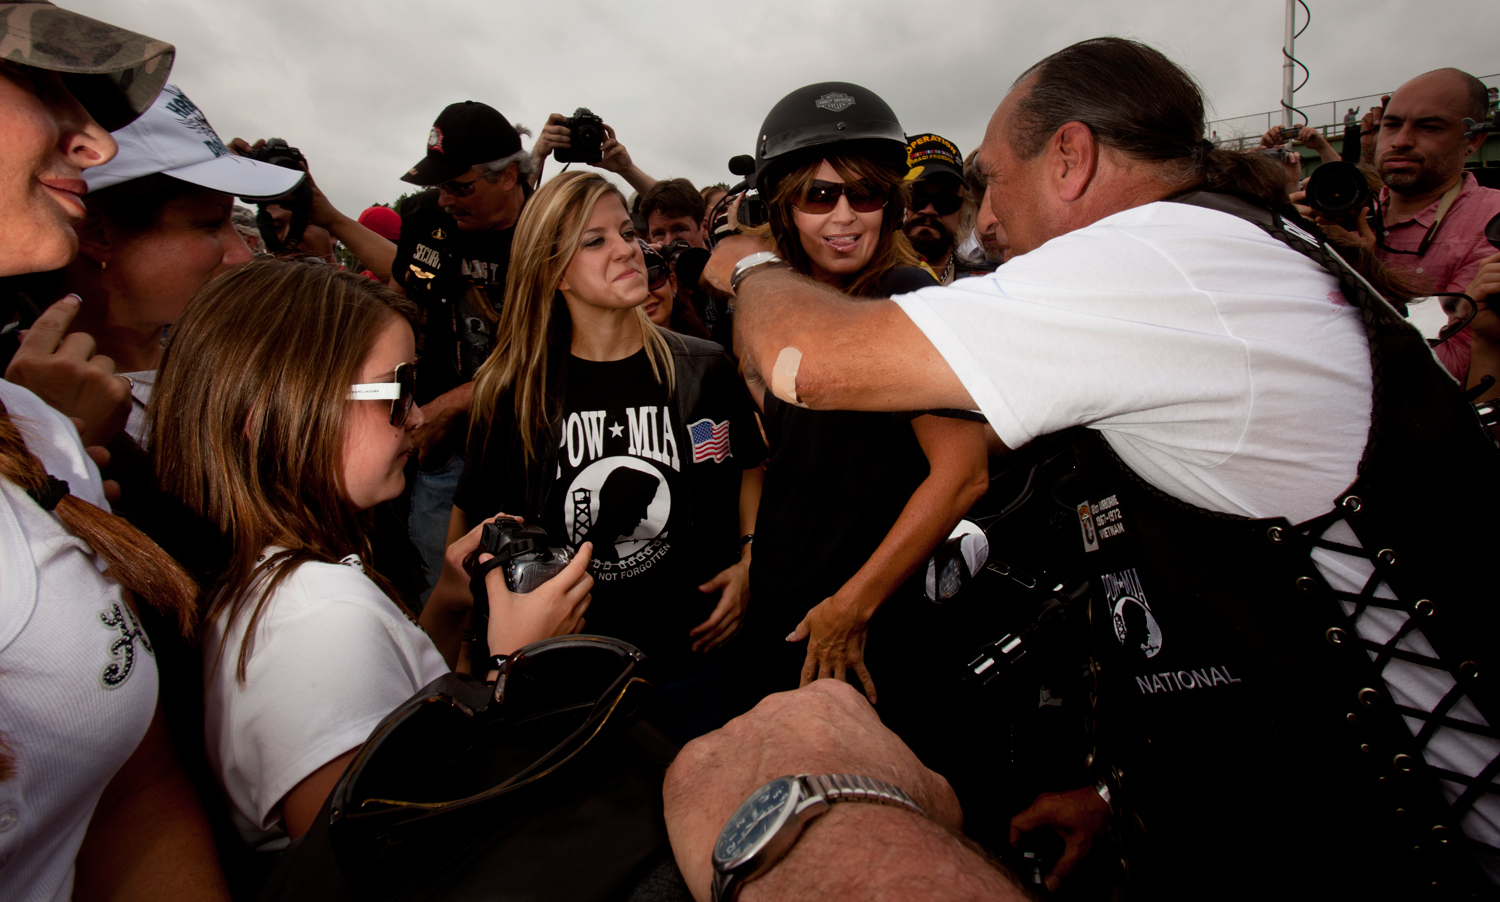 Sarah Palin mingles with bikers at the Pentagon parking lot in Washington, DC, before the Rolling Thunder rally. Sunday, May 29, 2011